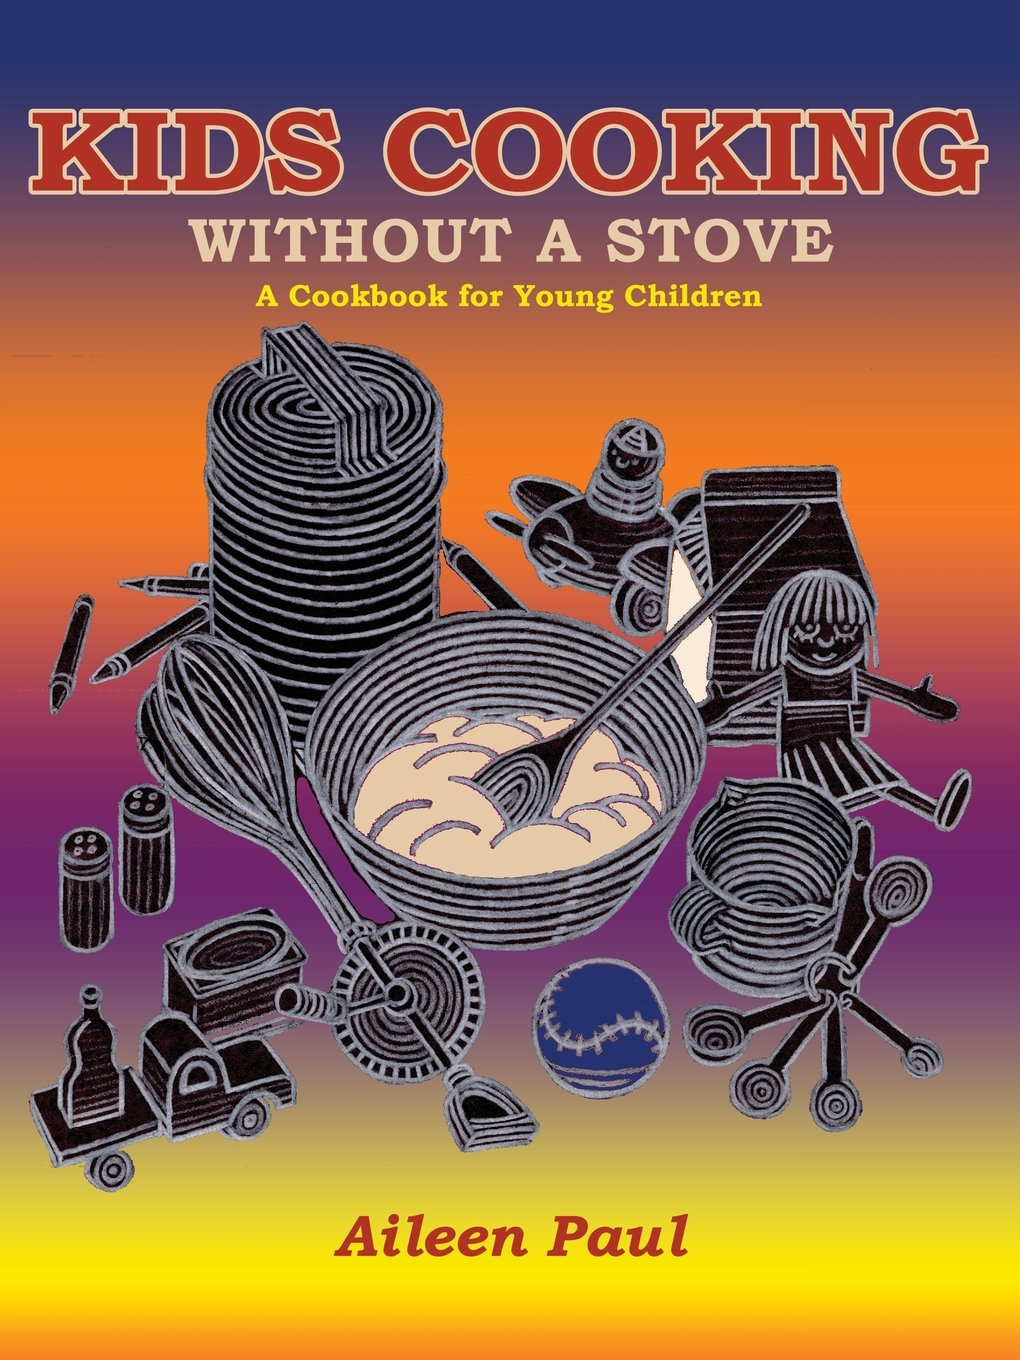 Cooking without a stove - Kids Cooking Without A Stove Aileen Paul 9780865340602 Amazon Com Books